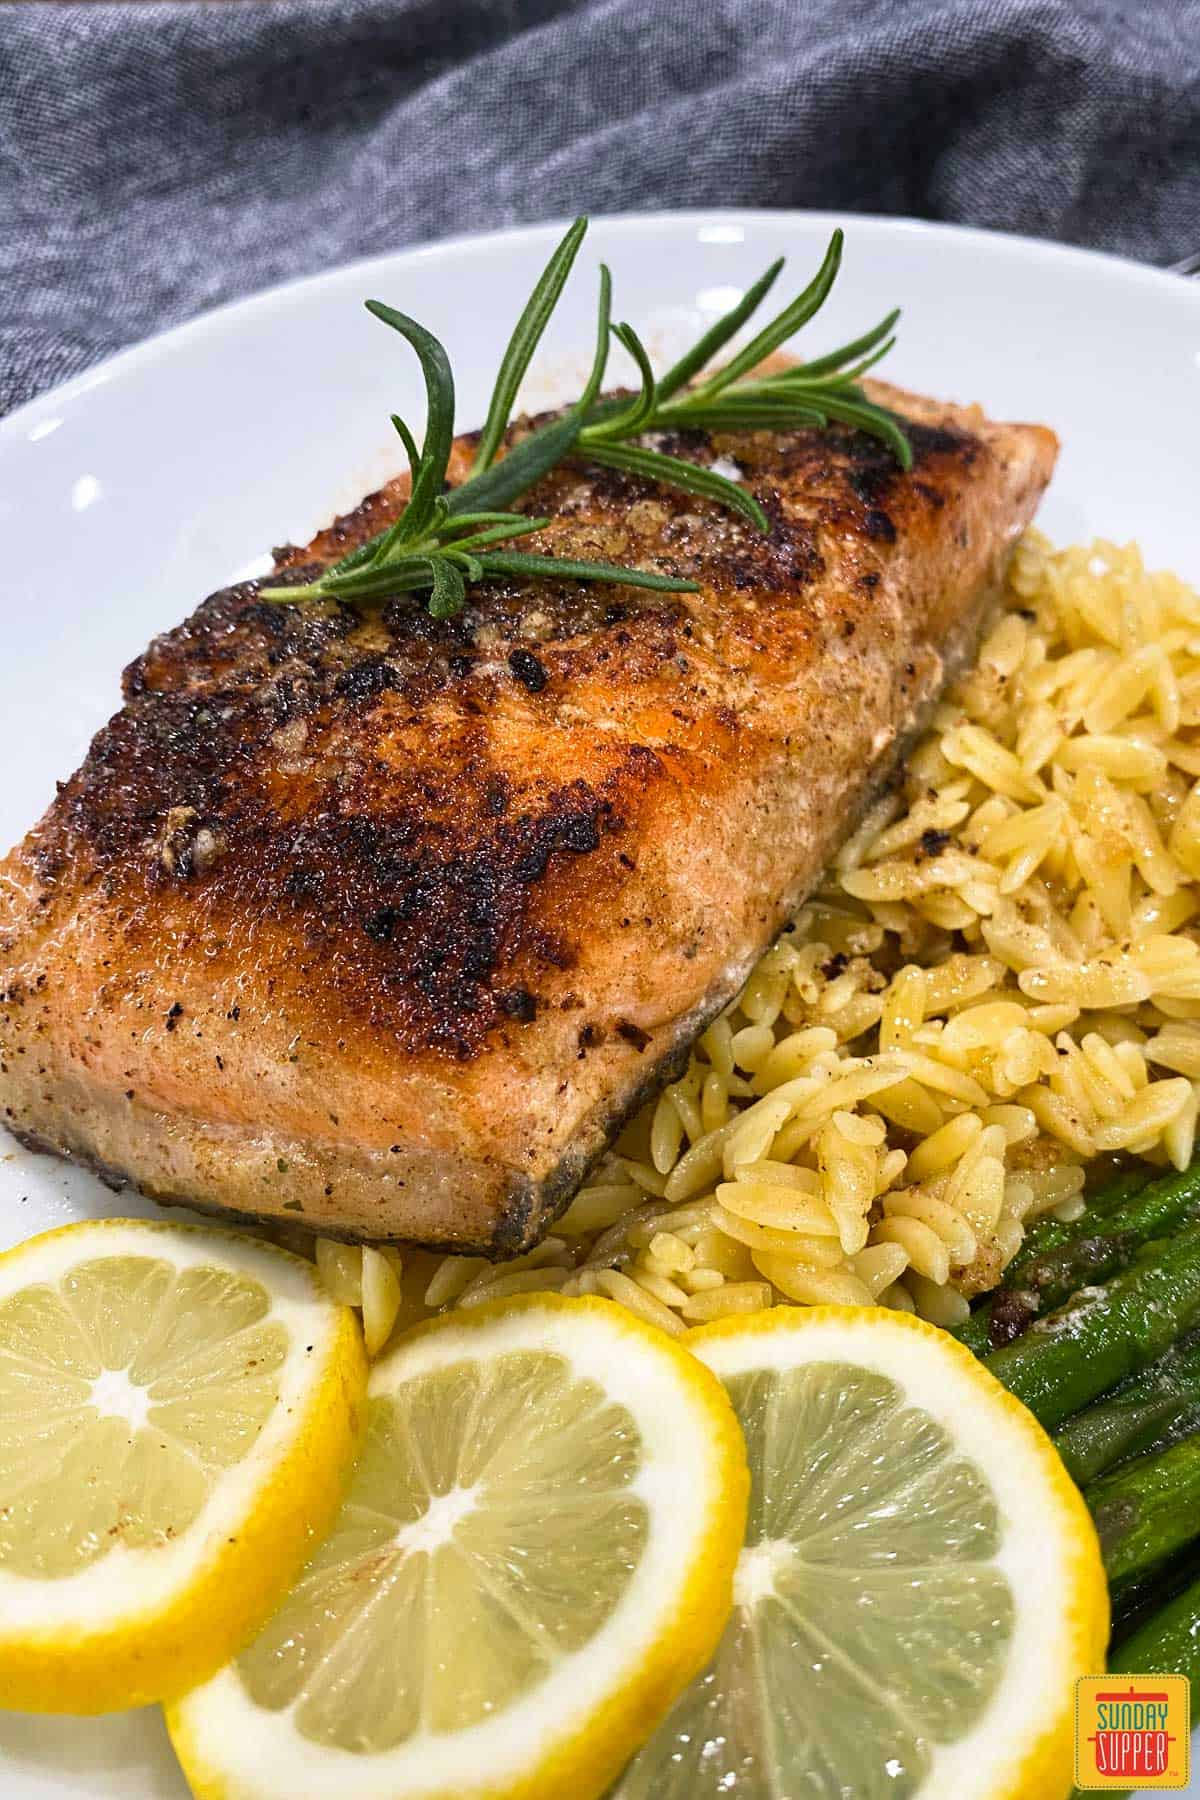 A white plate with sous vide salmon, lemon slices, orzo, and asparagus